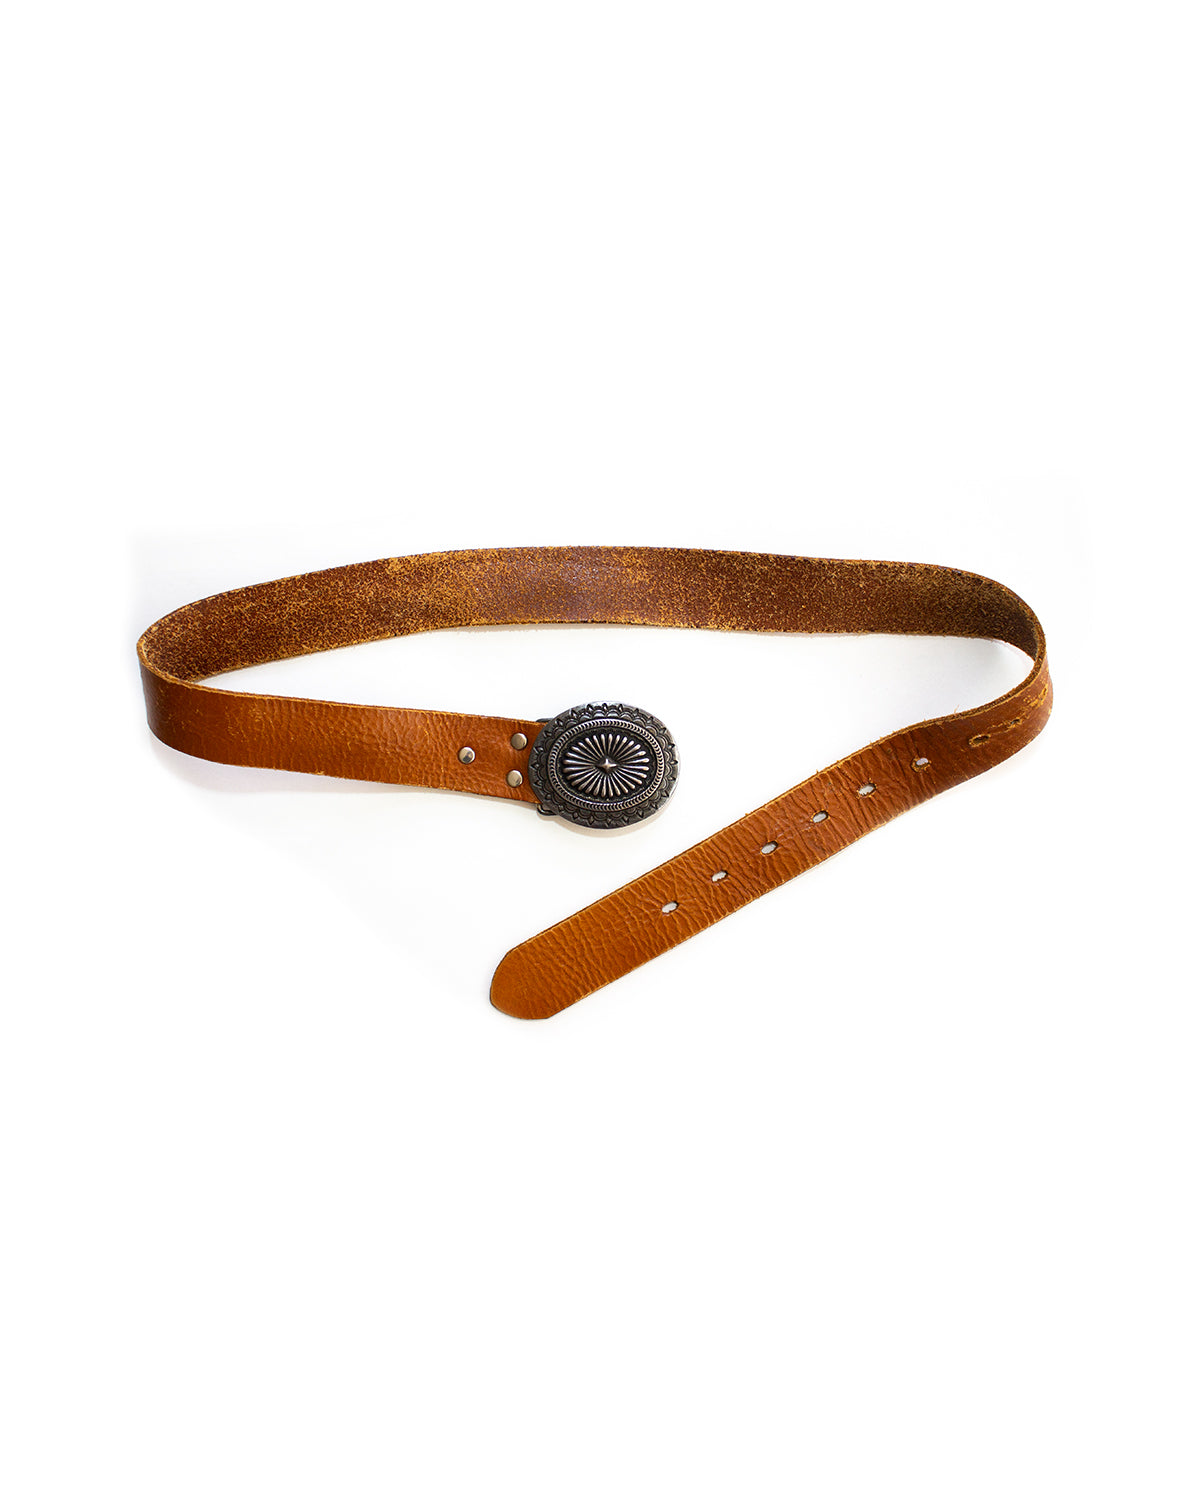 Kapital Concha Style Suede Belt 2000s